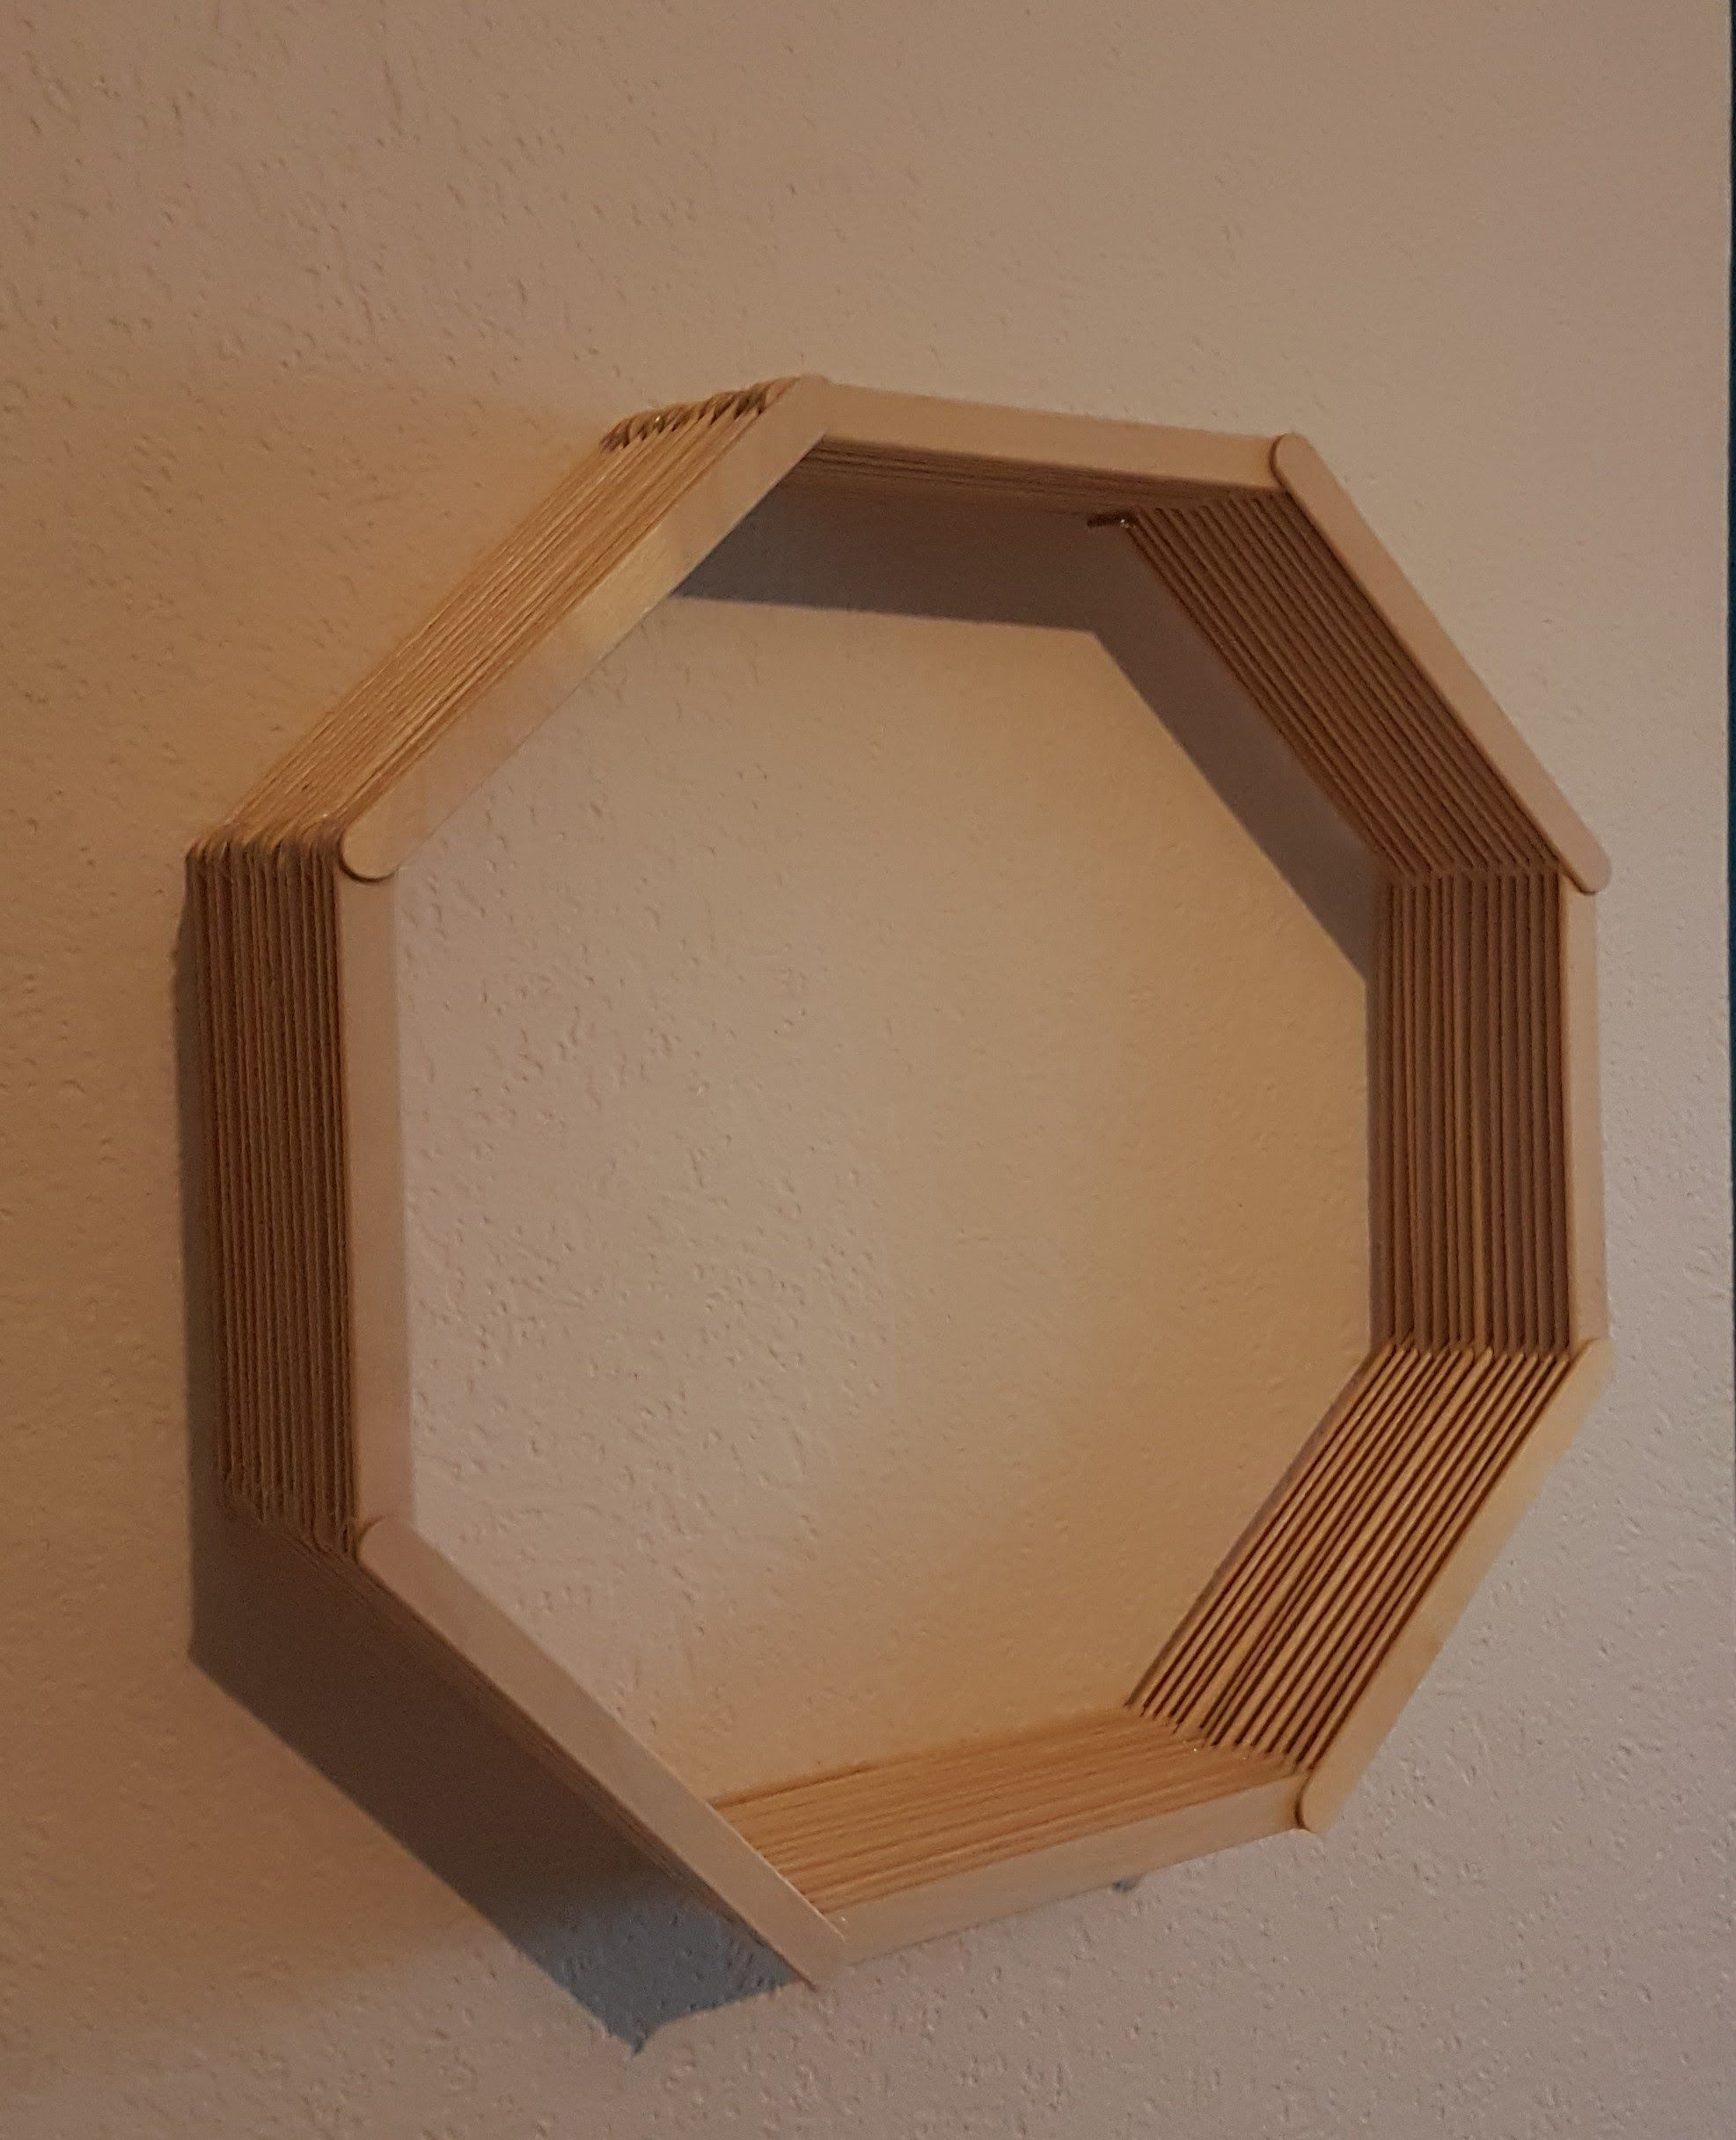 DIY Popsicle Stick Octagon Shelf